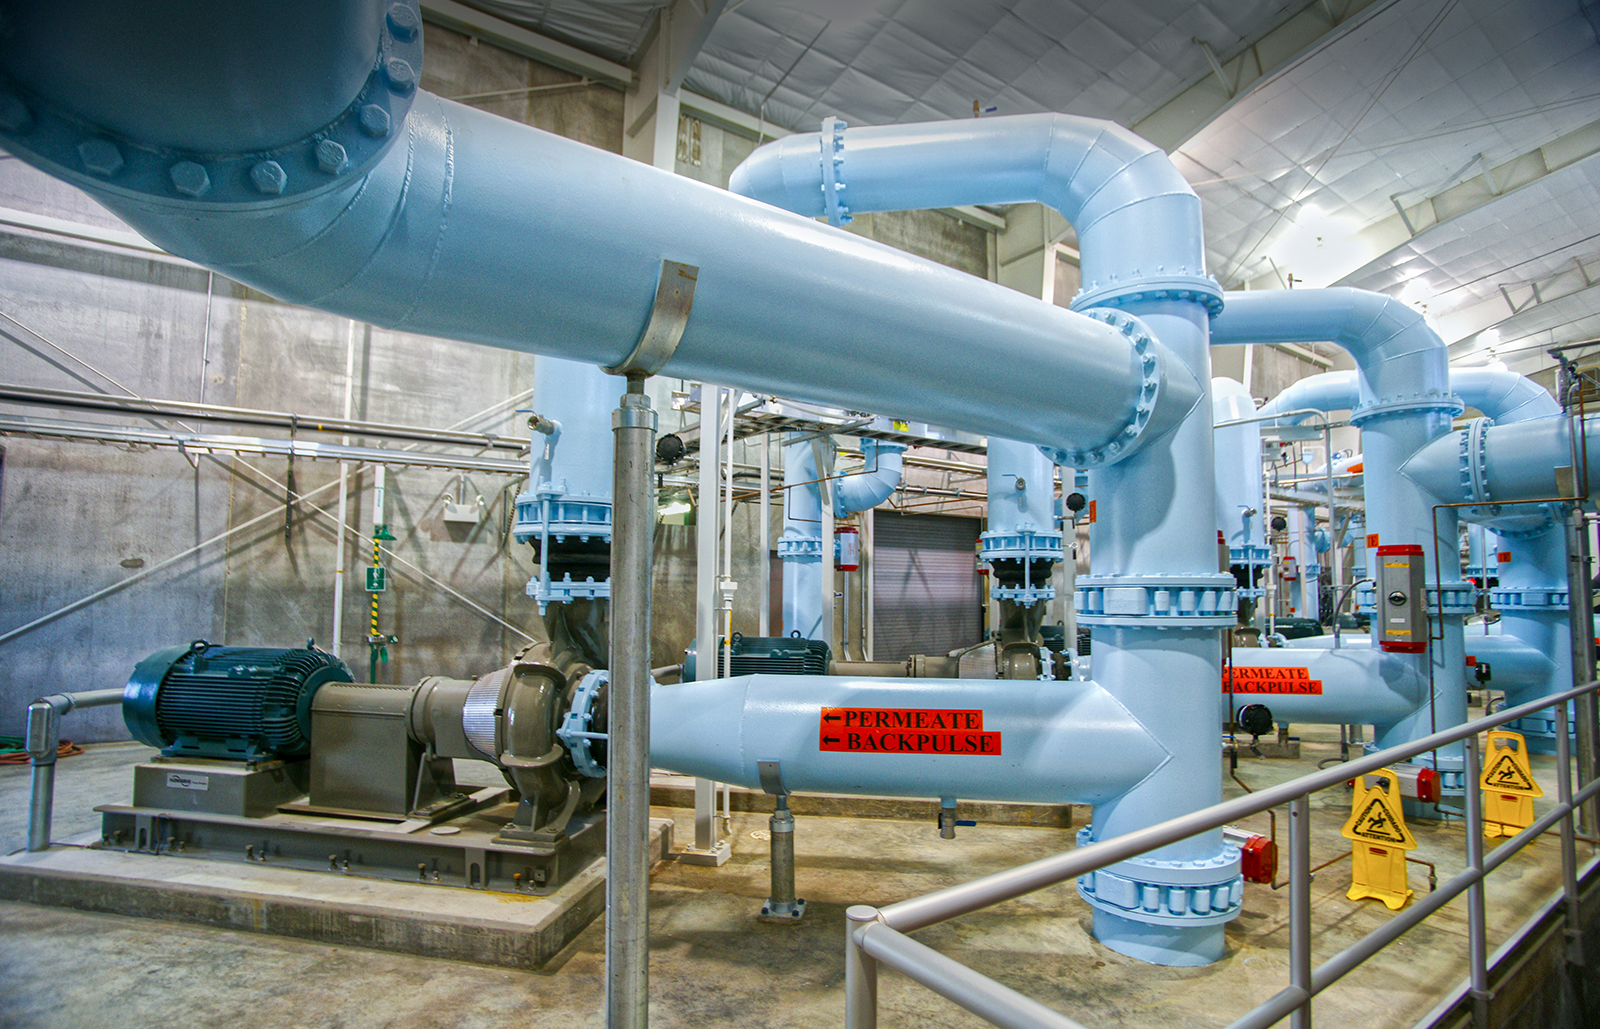 Wichita Aquifer Storage and Recovery Water Treatment Plant